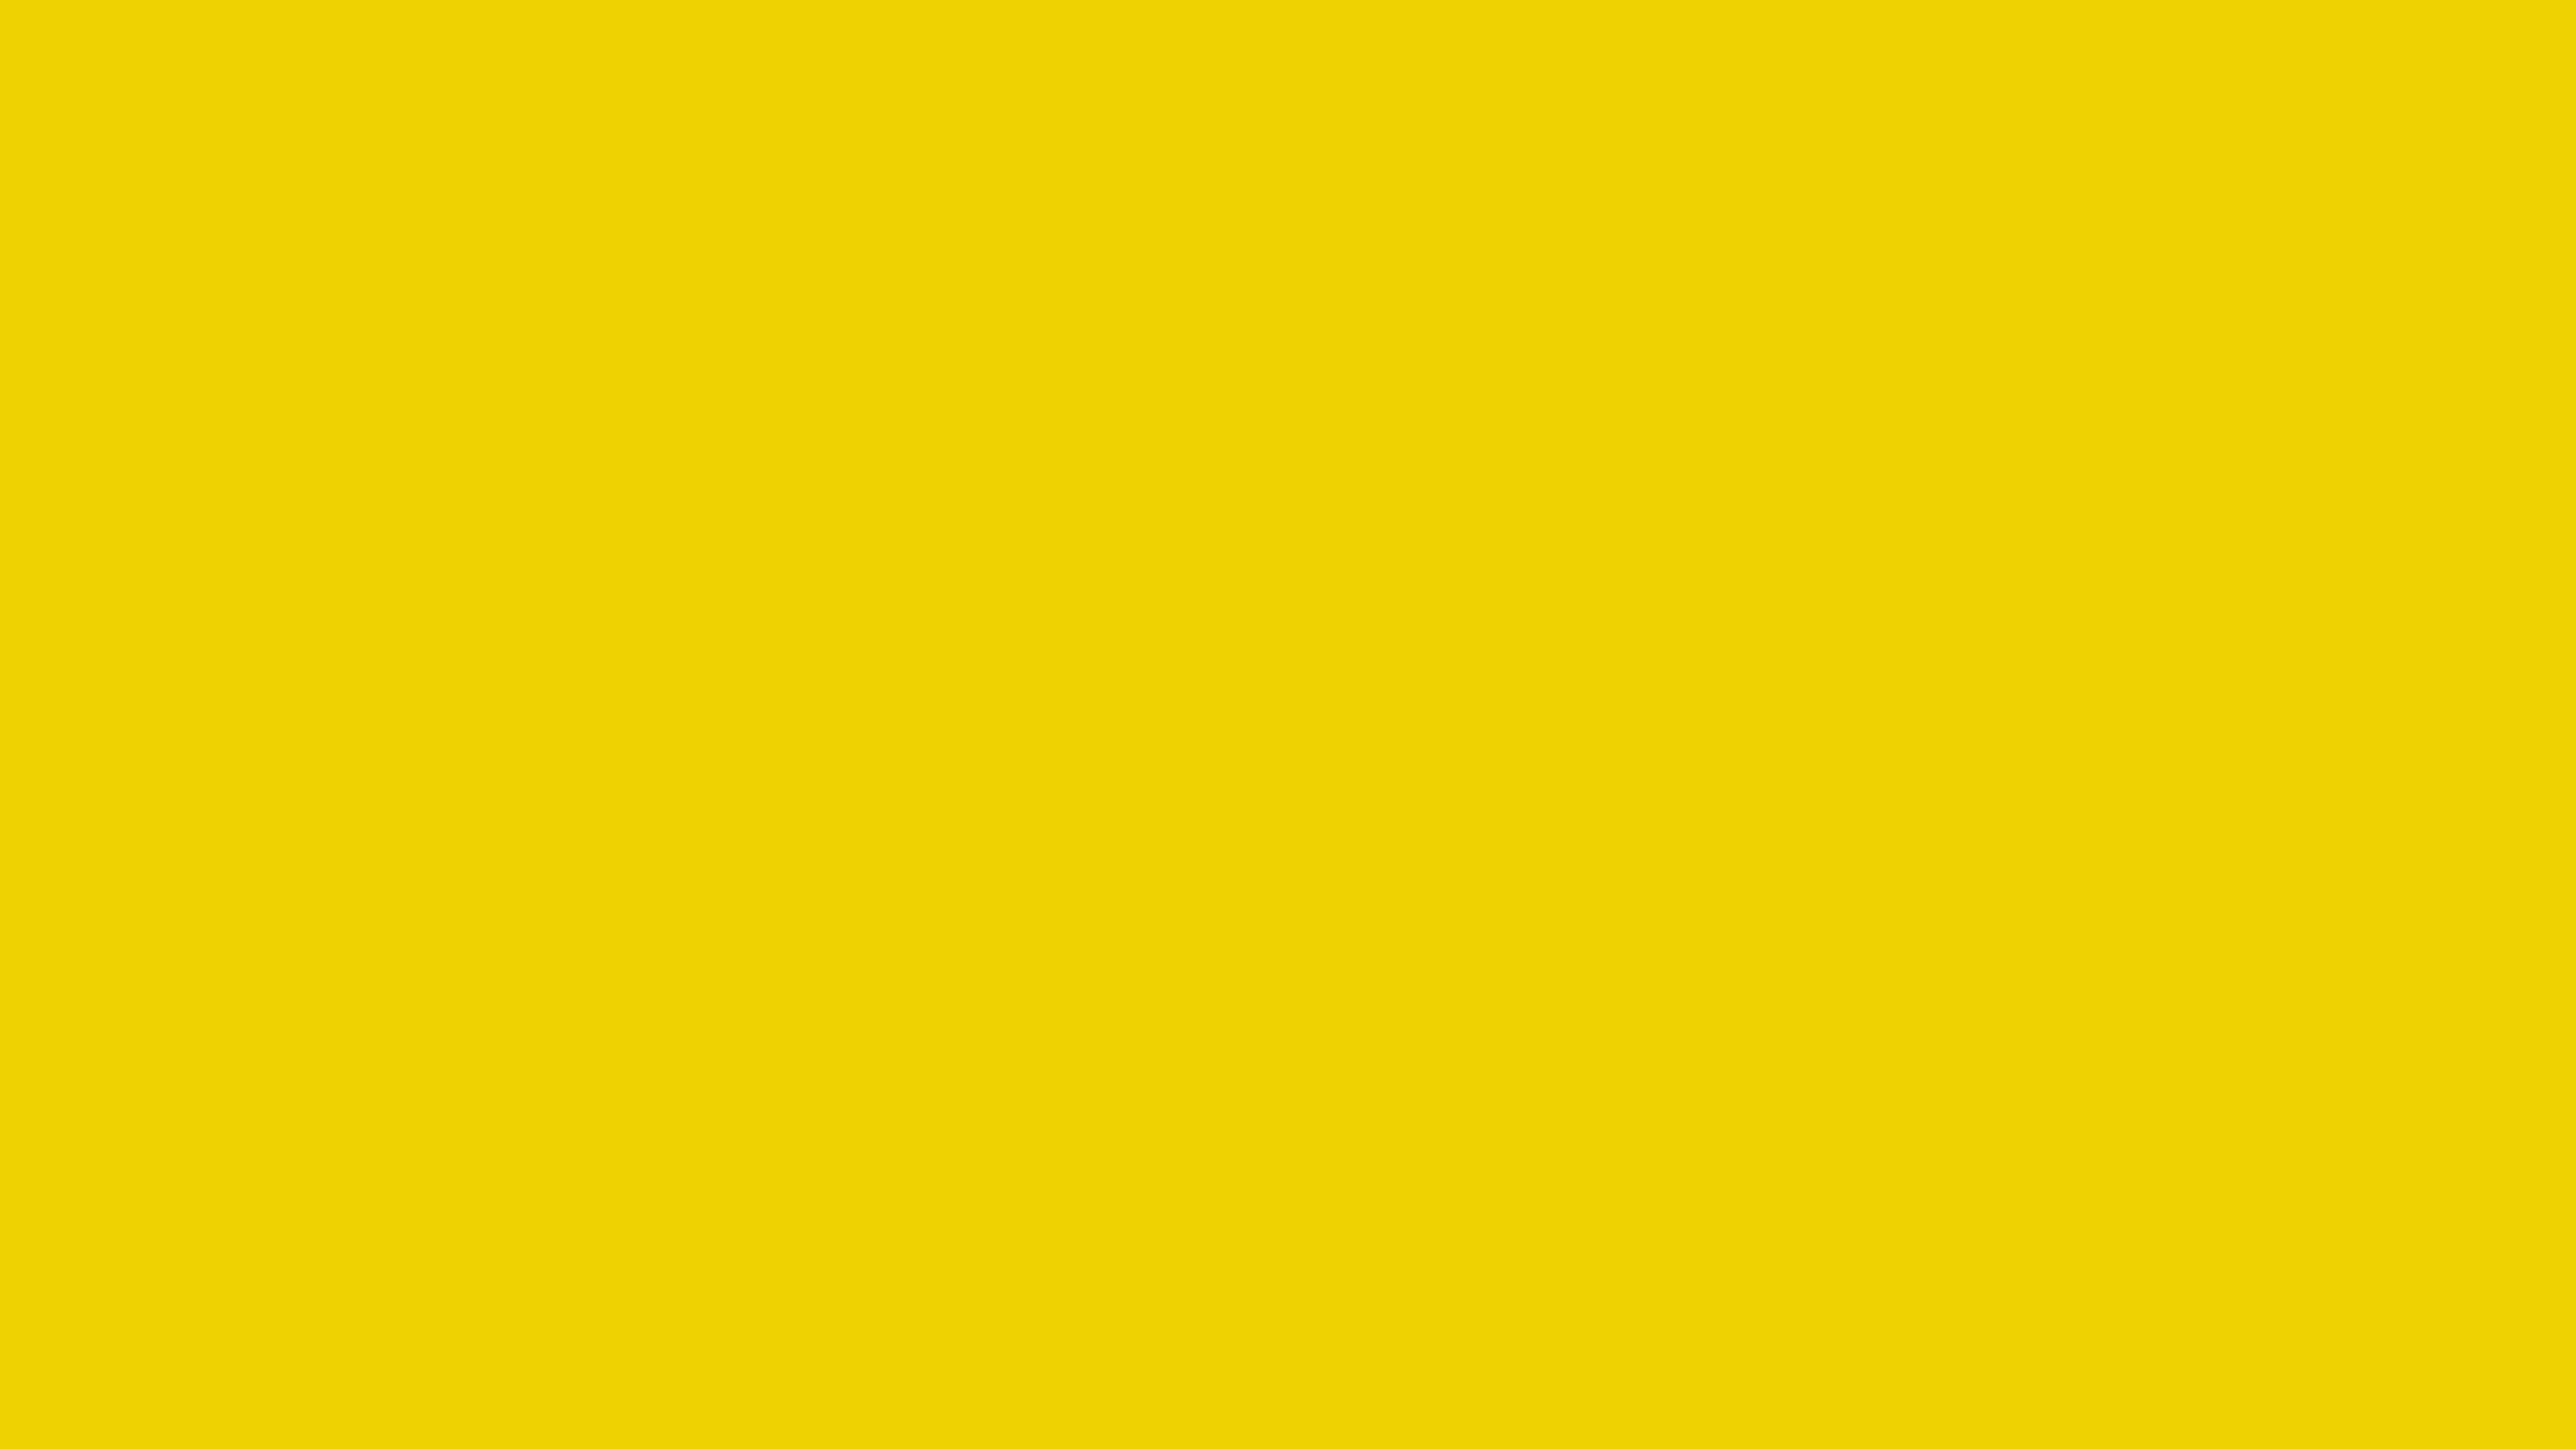 4096x2304 Safety Yellow Solid Color Background